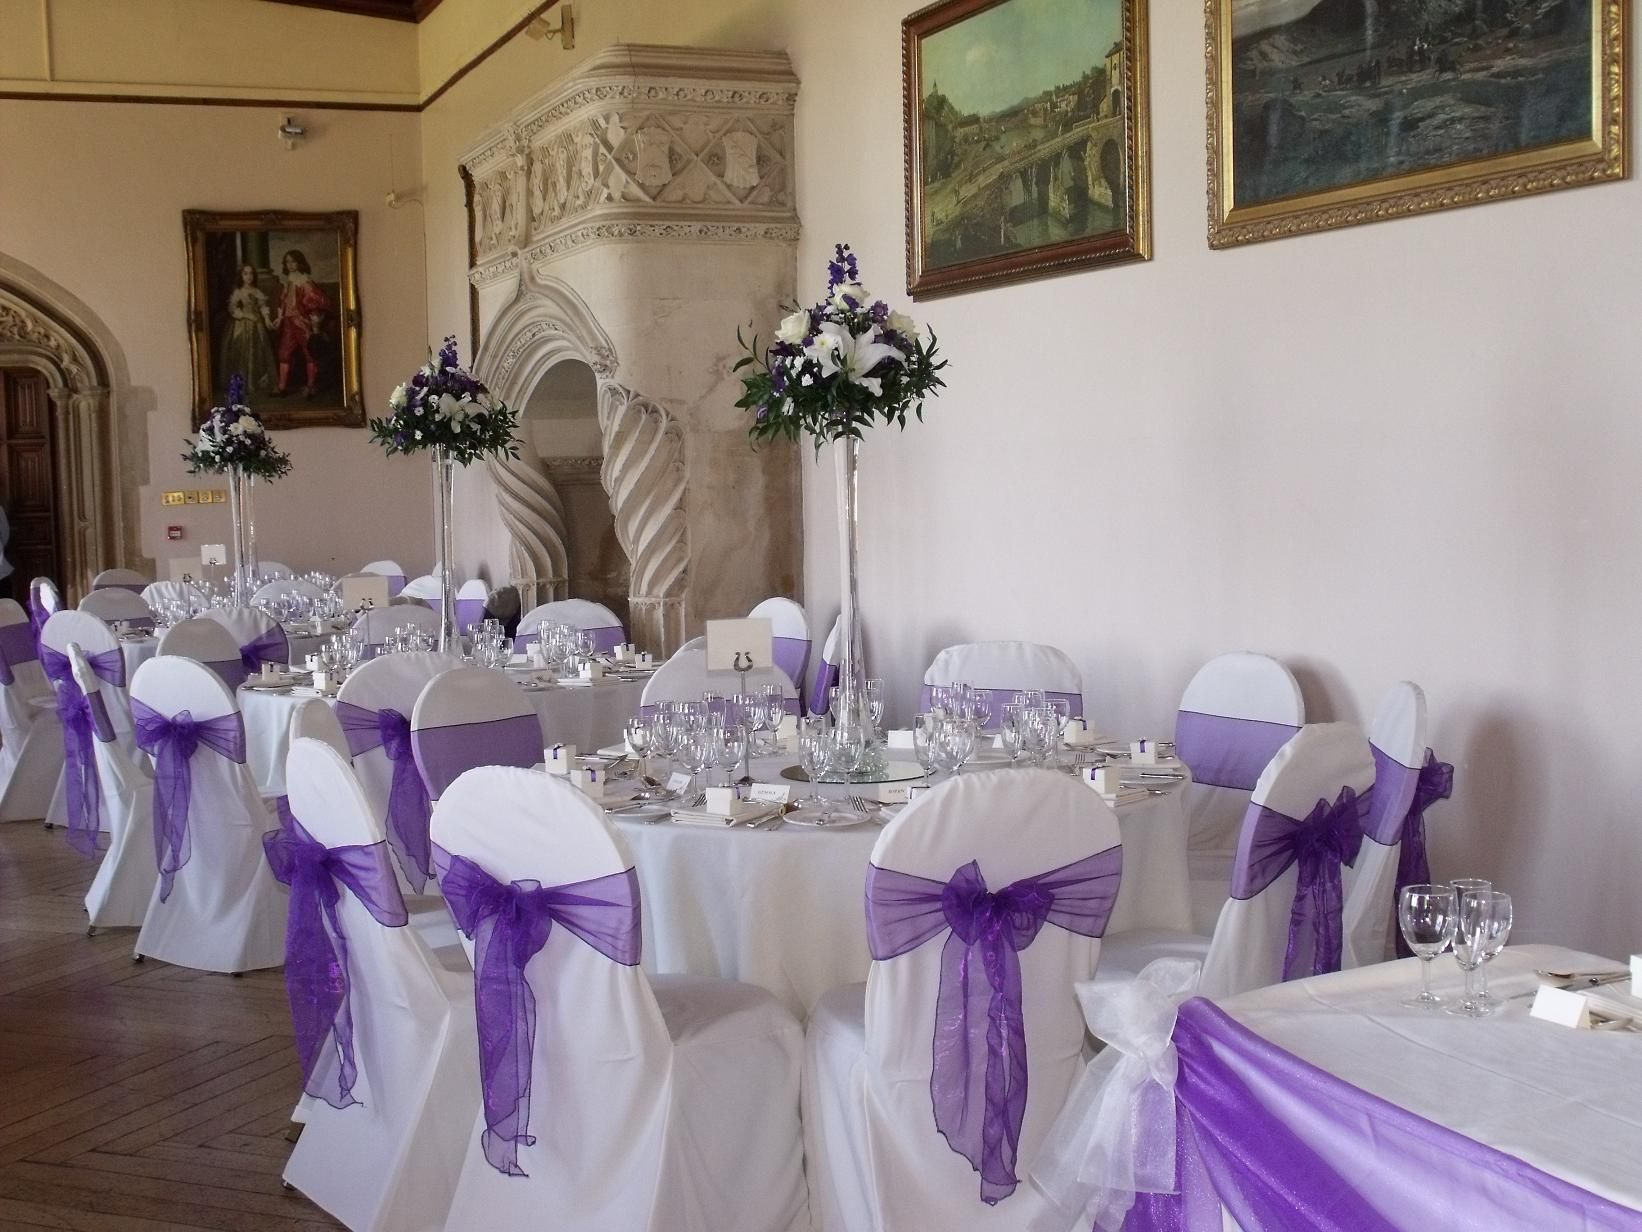 Wedding Reception Chairs Purple Receptions Events Ceremony Parties Modern Decorations Chair Covers